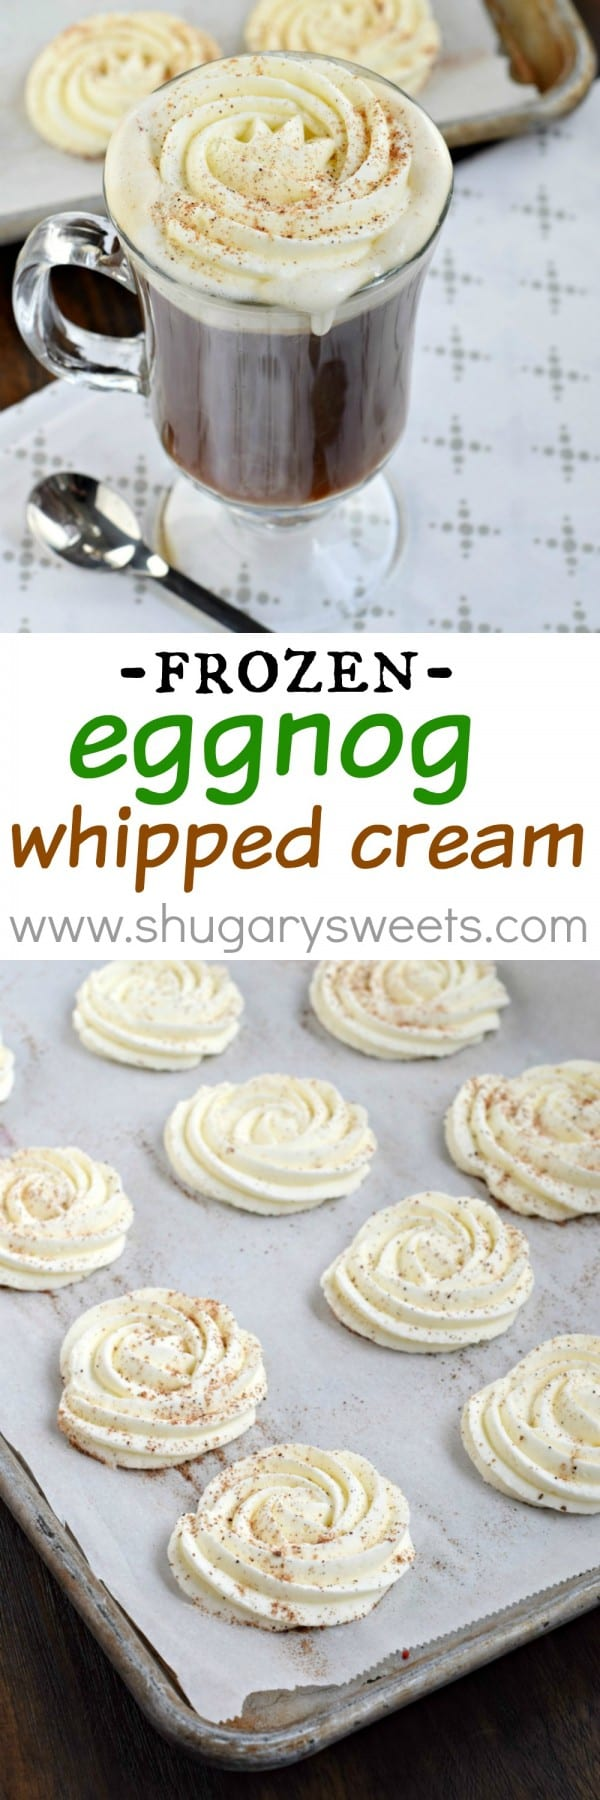 Whip up a batch of this delicious Frozen Eggnog Whipped Cream to add to your favorite hot beverage. Whether it's coffee, cocoa or eggnog, this delicious whipped cream is ready in the freezer!